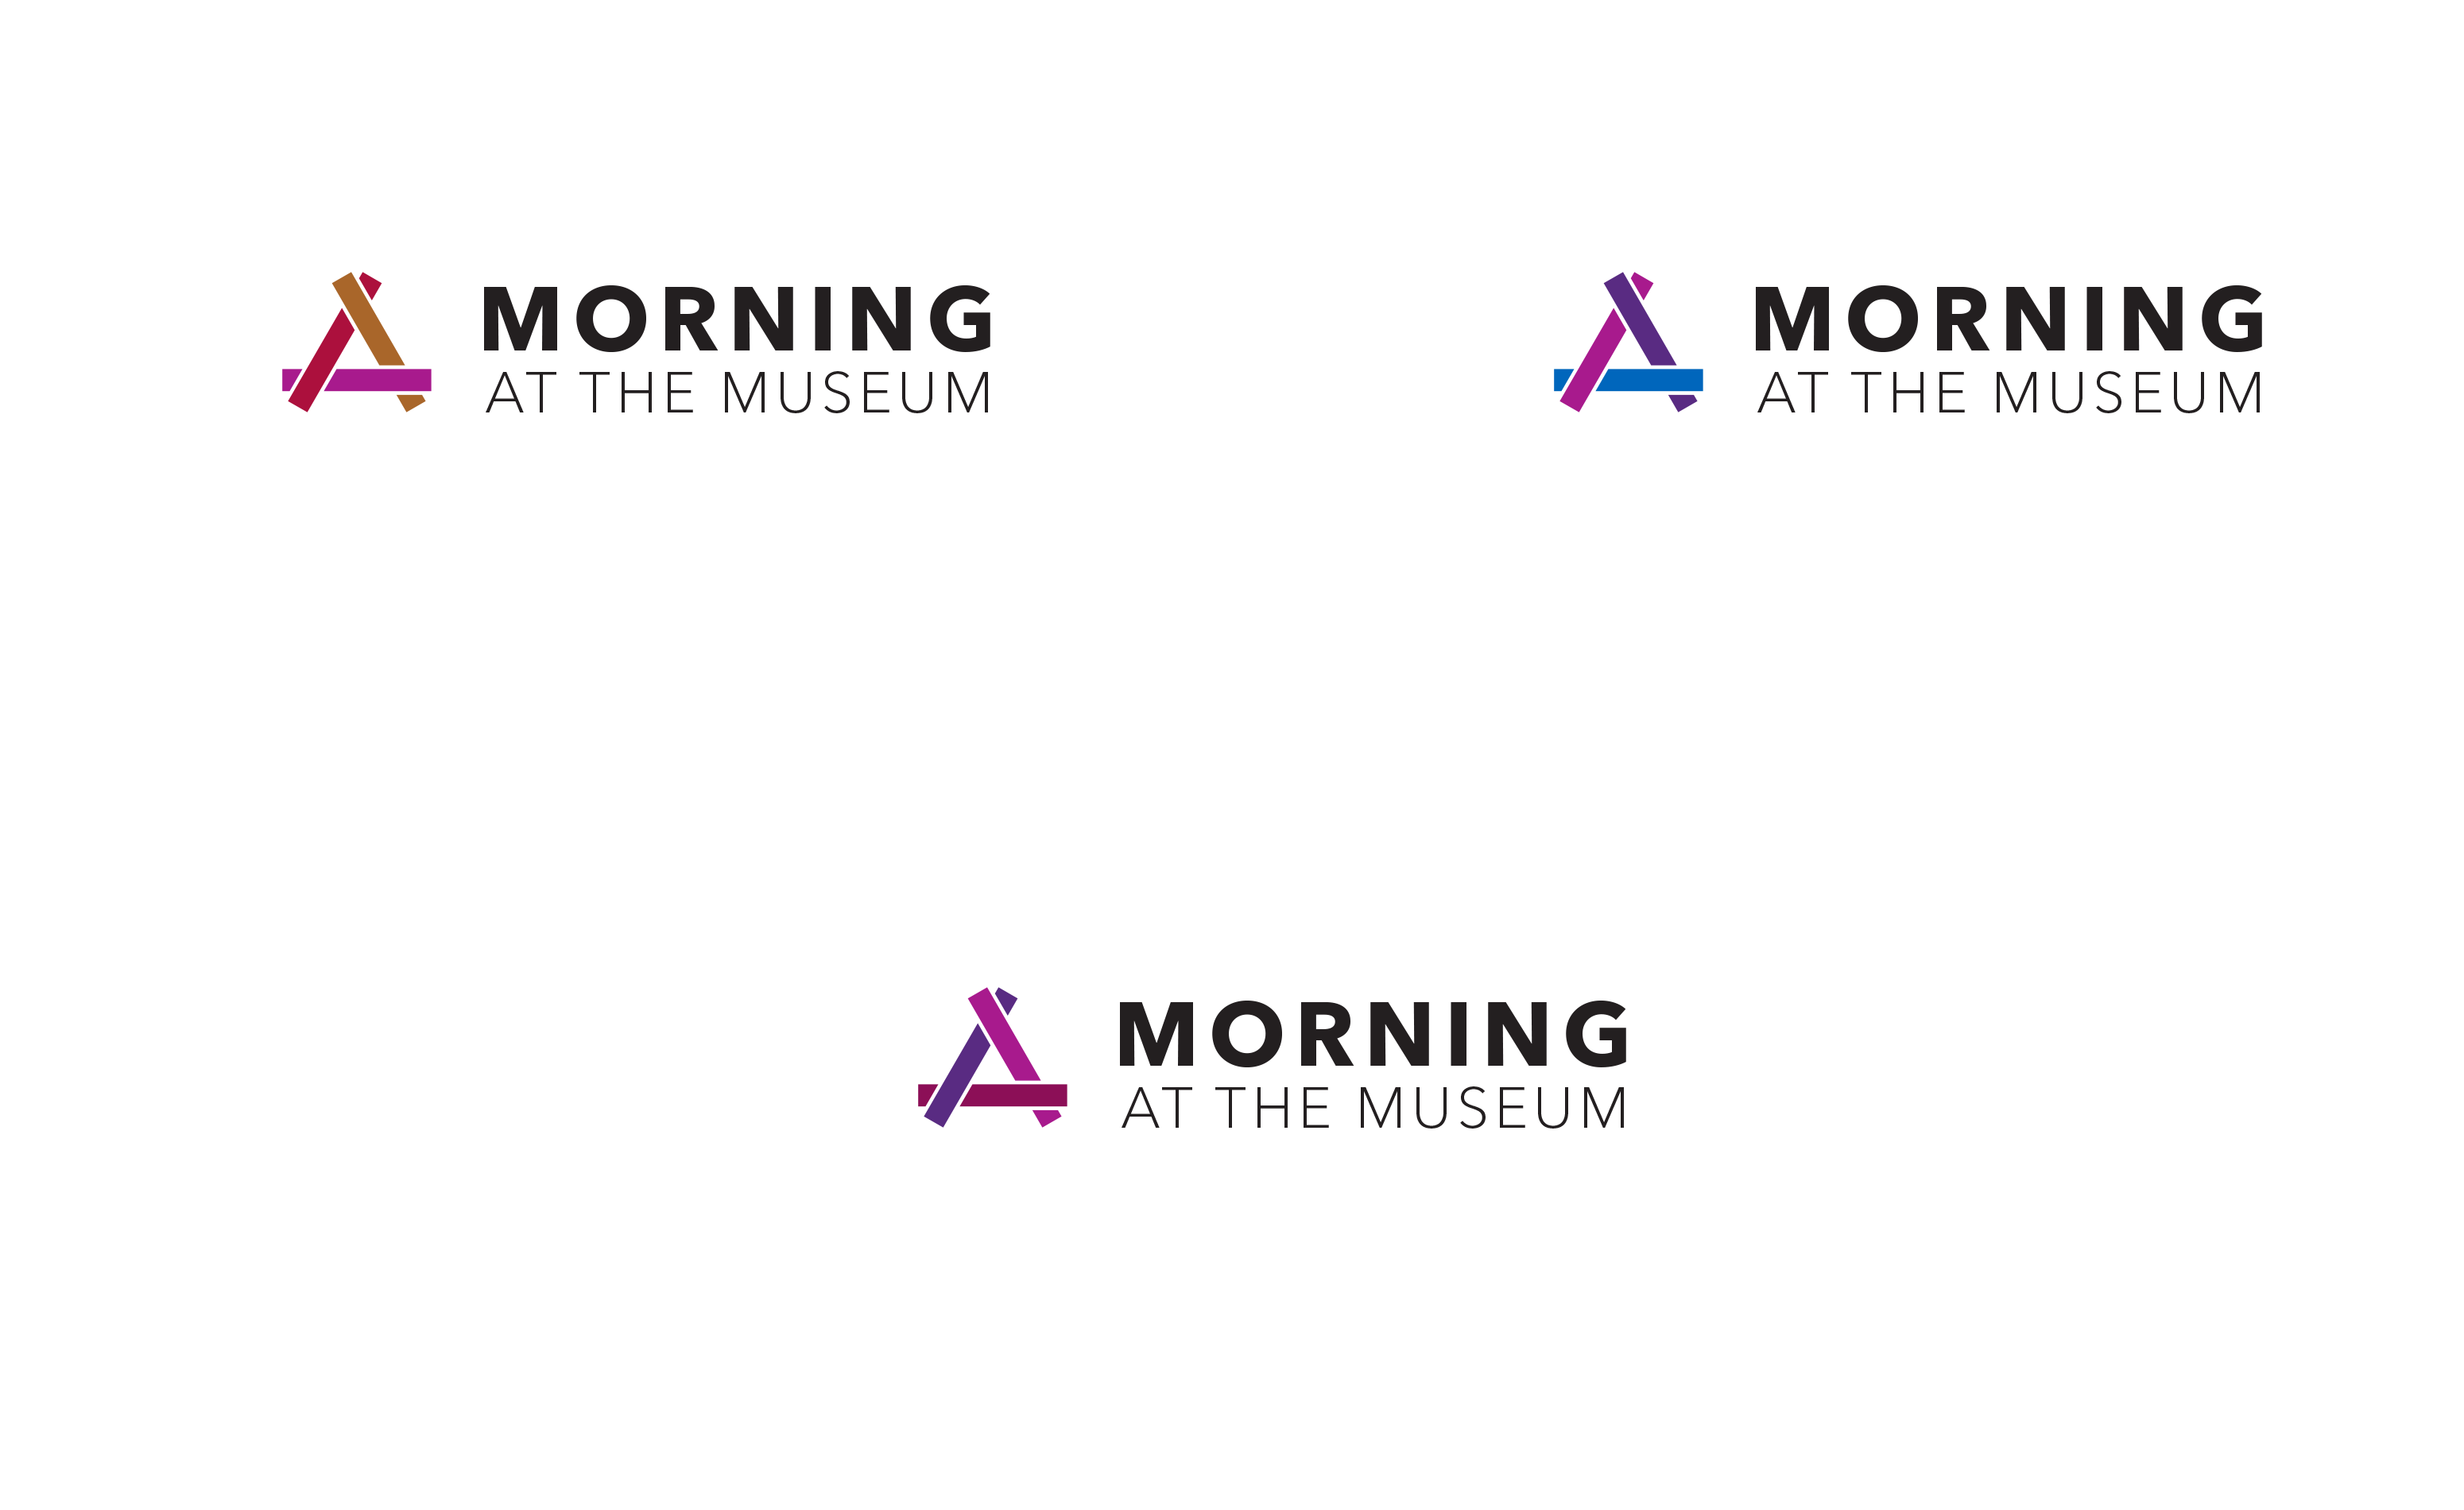 """A page showing the Smithsonian Access Logo Family: """"Morning at the Museum"""""""